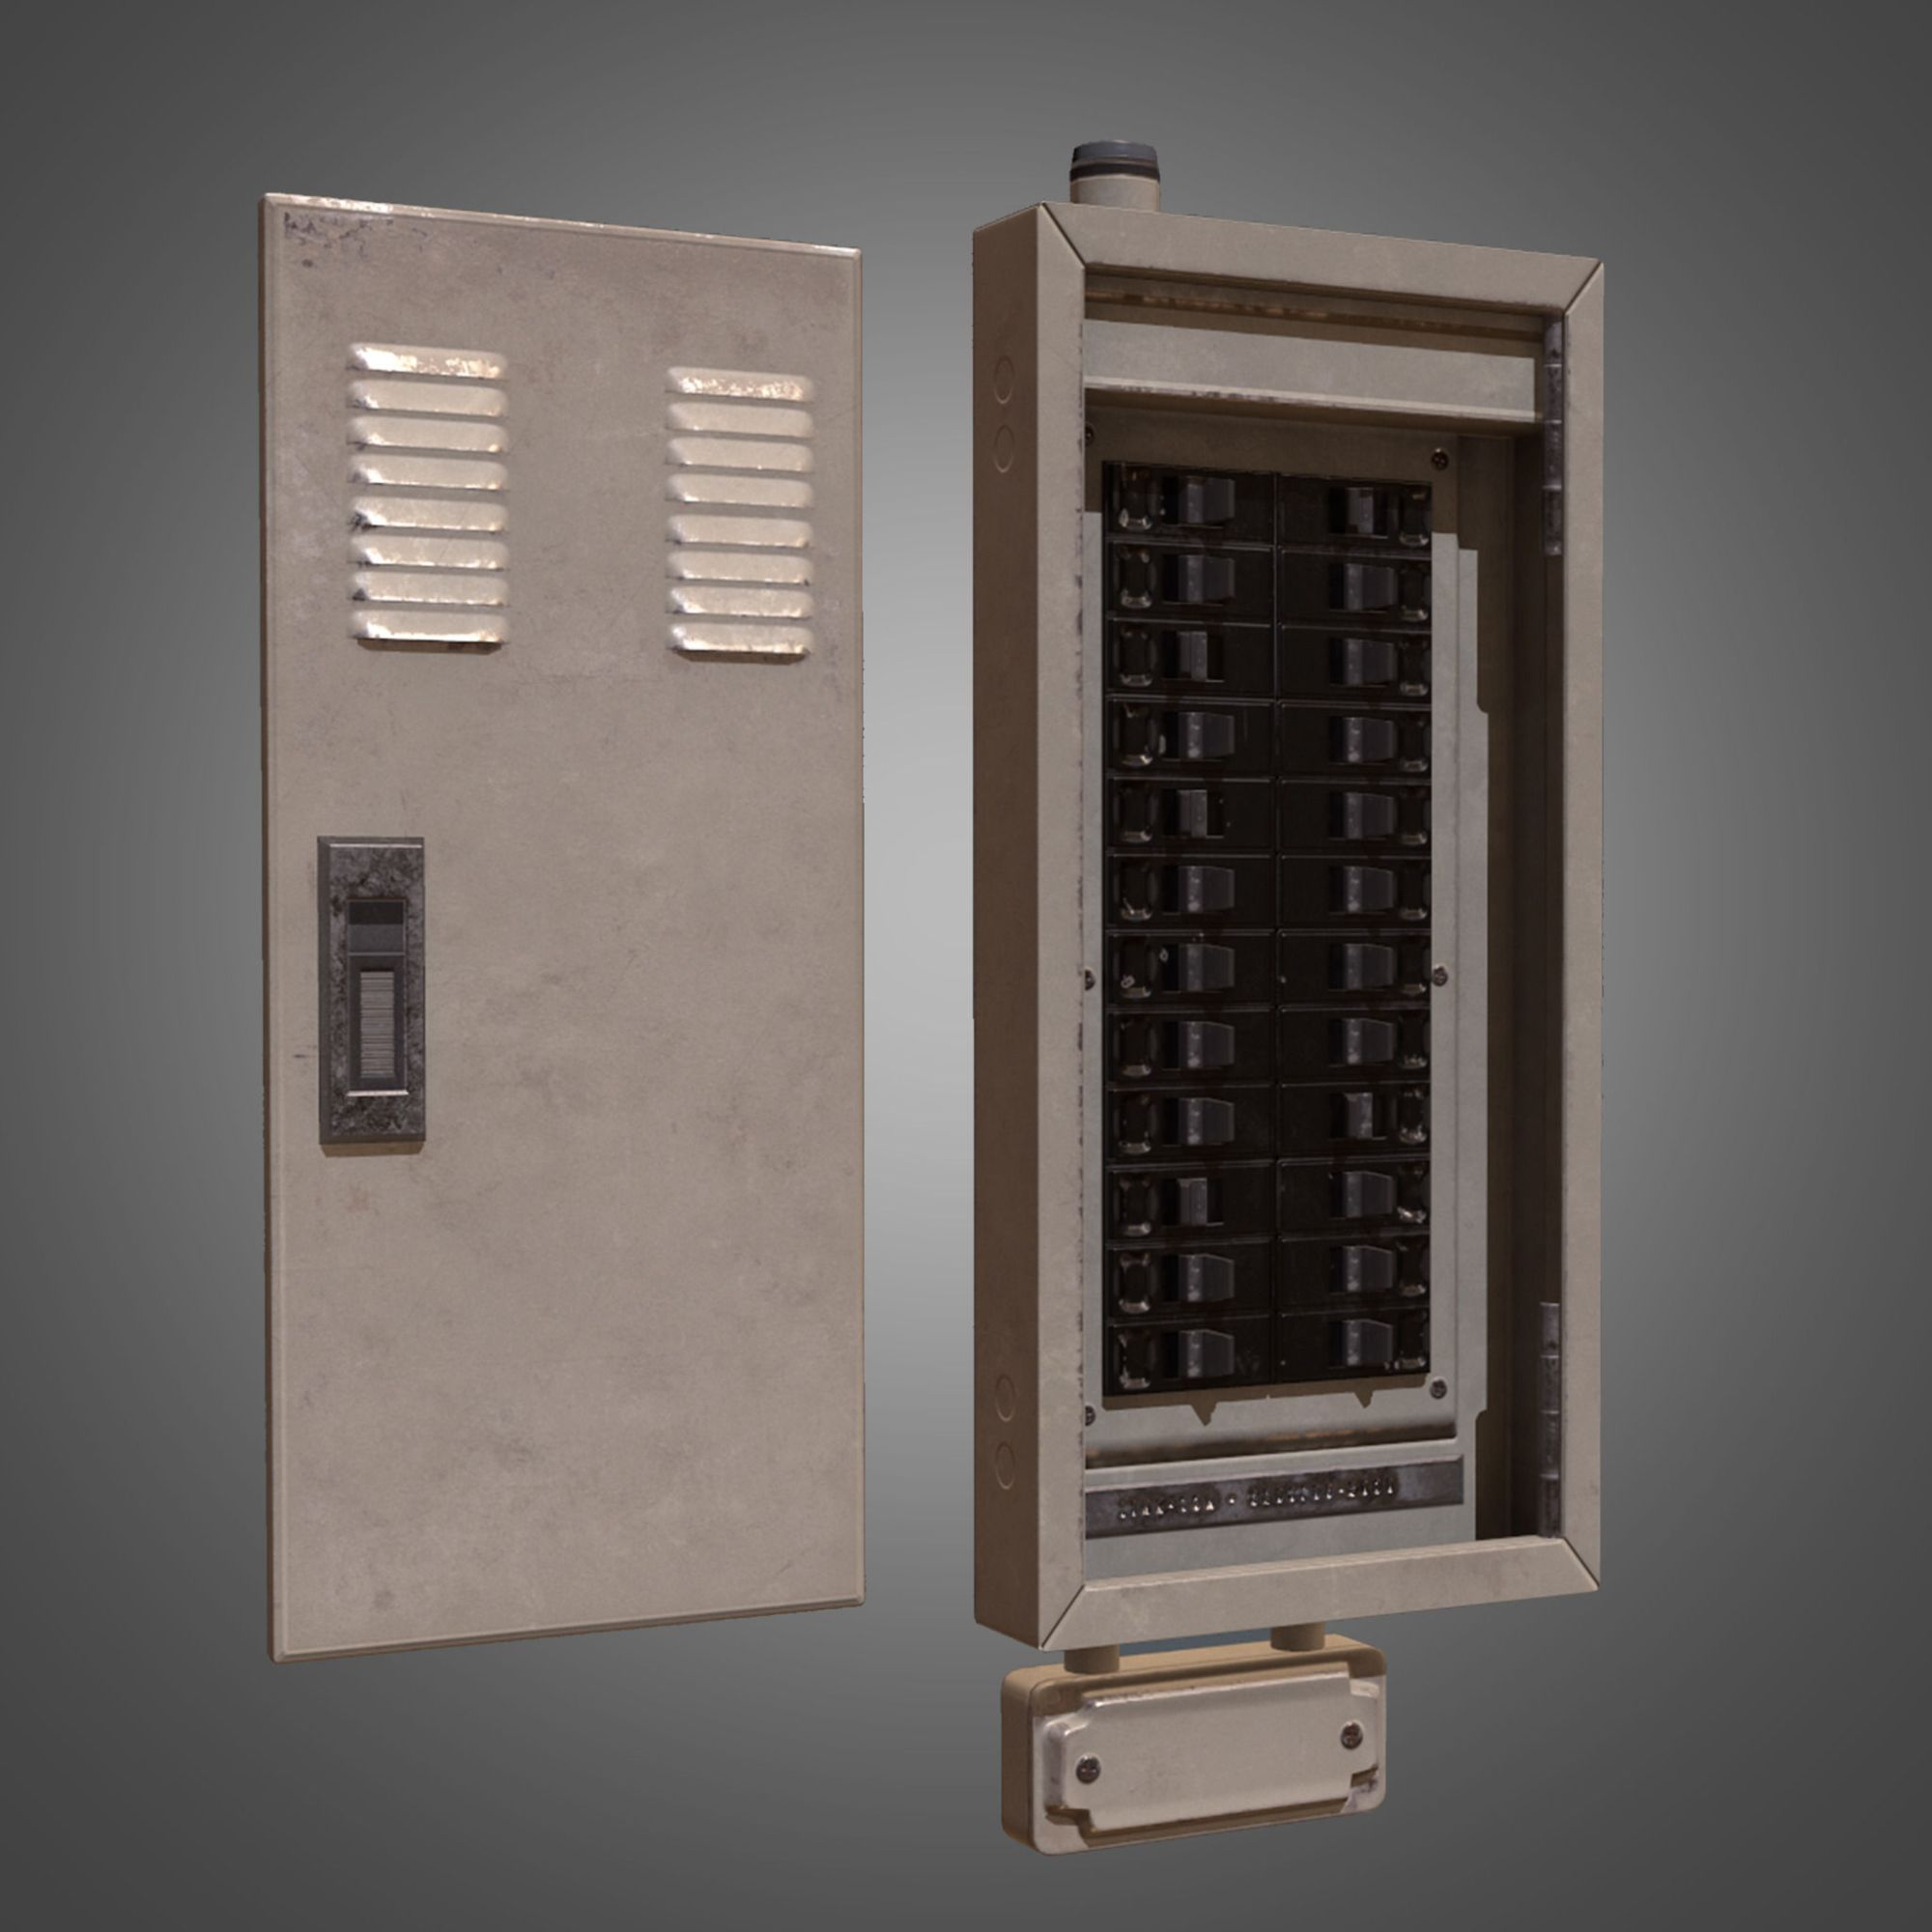 hight resolution of electrical fuse box pbr game ready 3d model cgtrader old house fuse box electrical fuse box